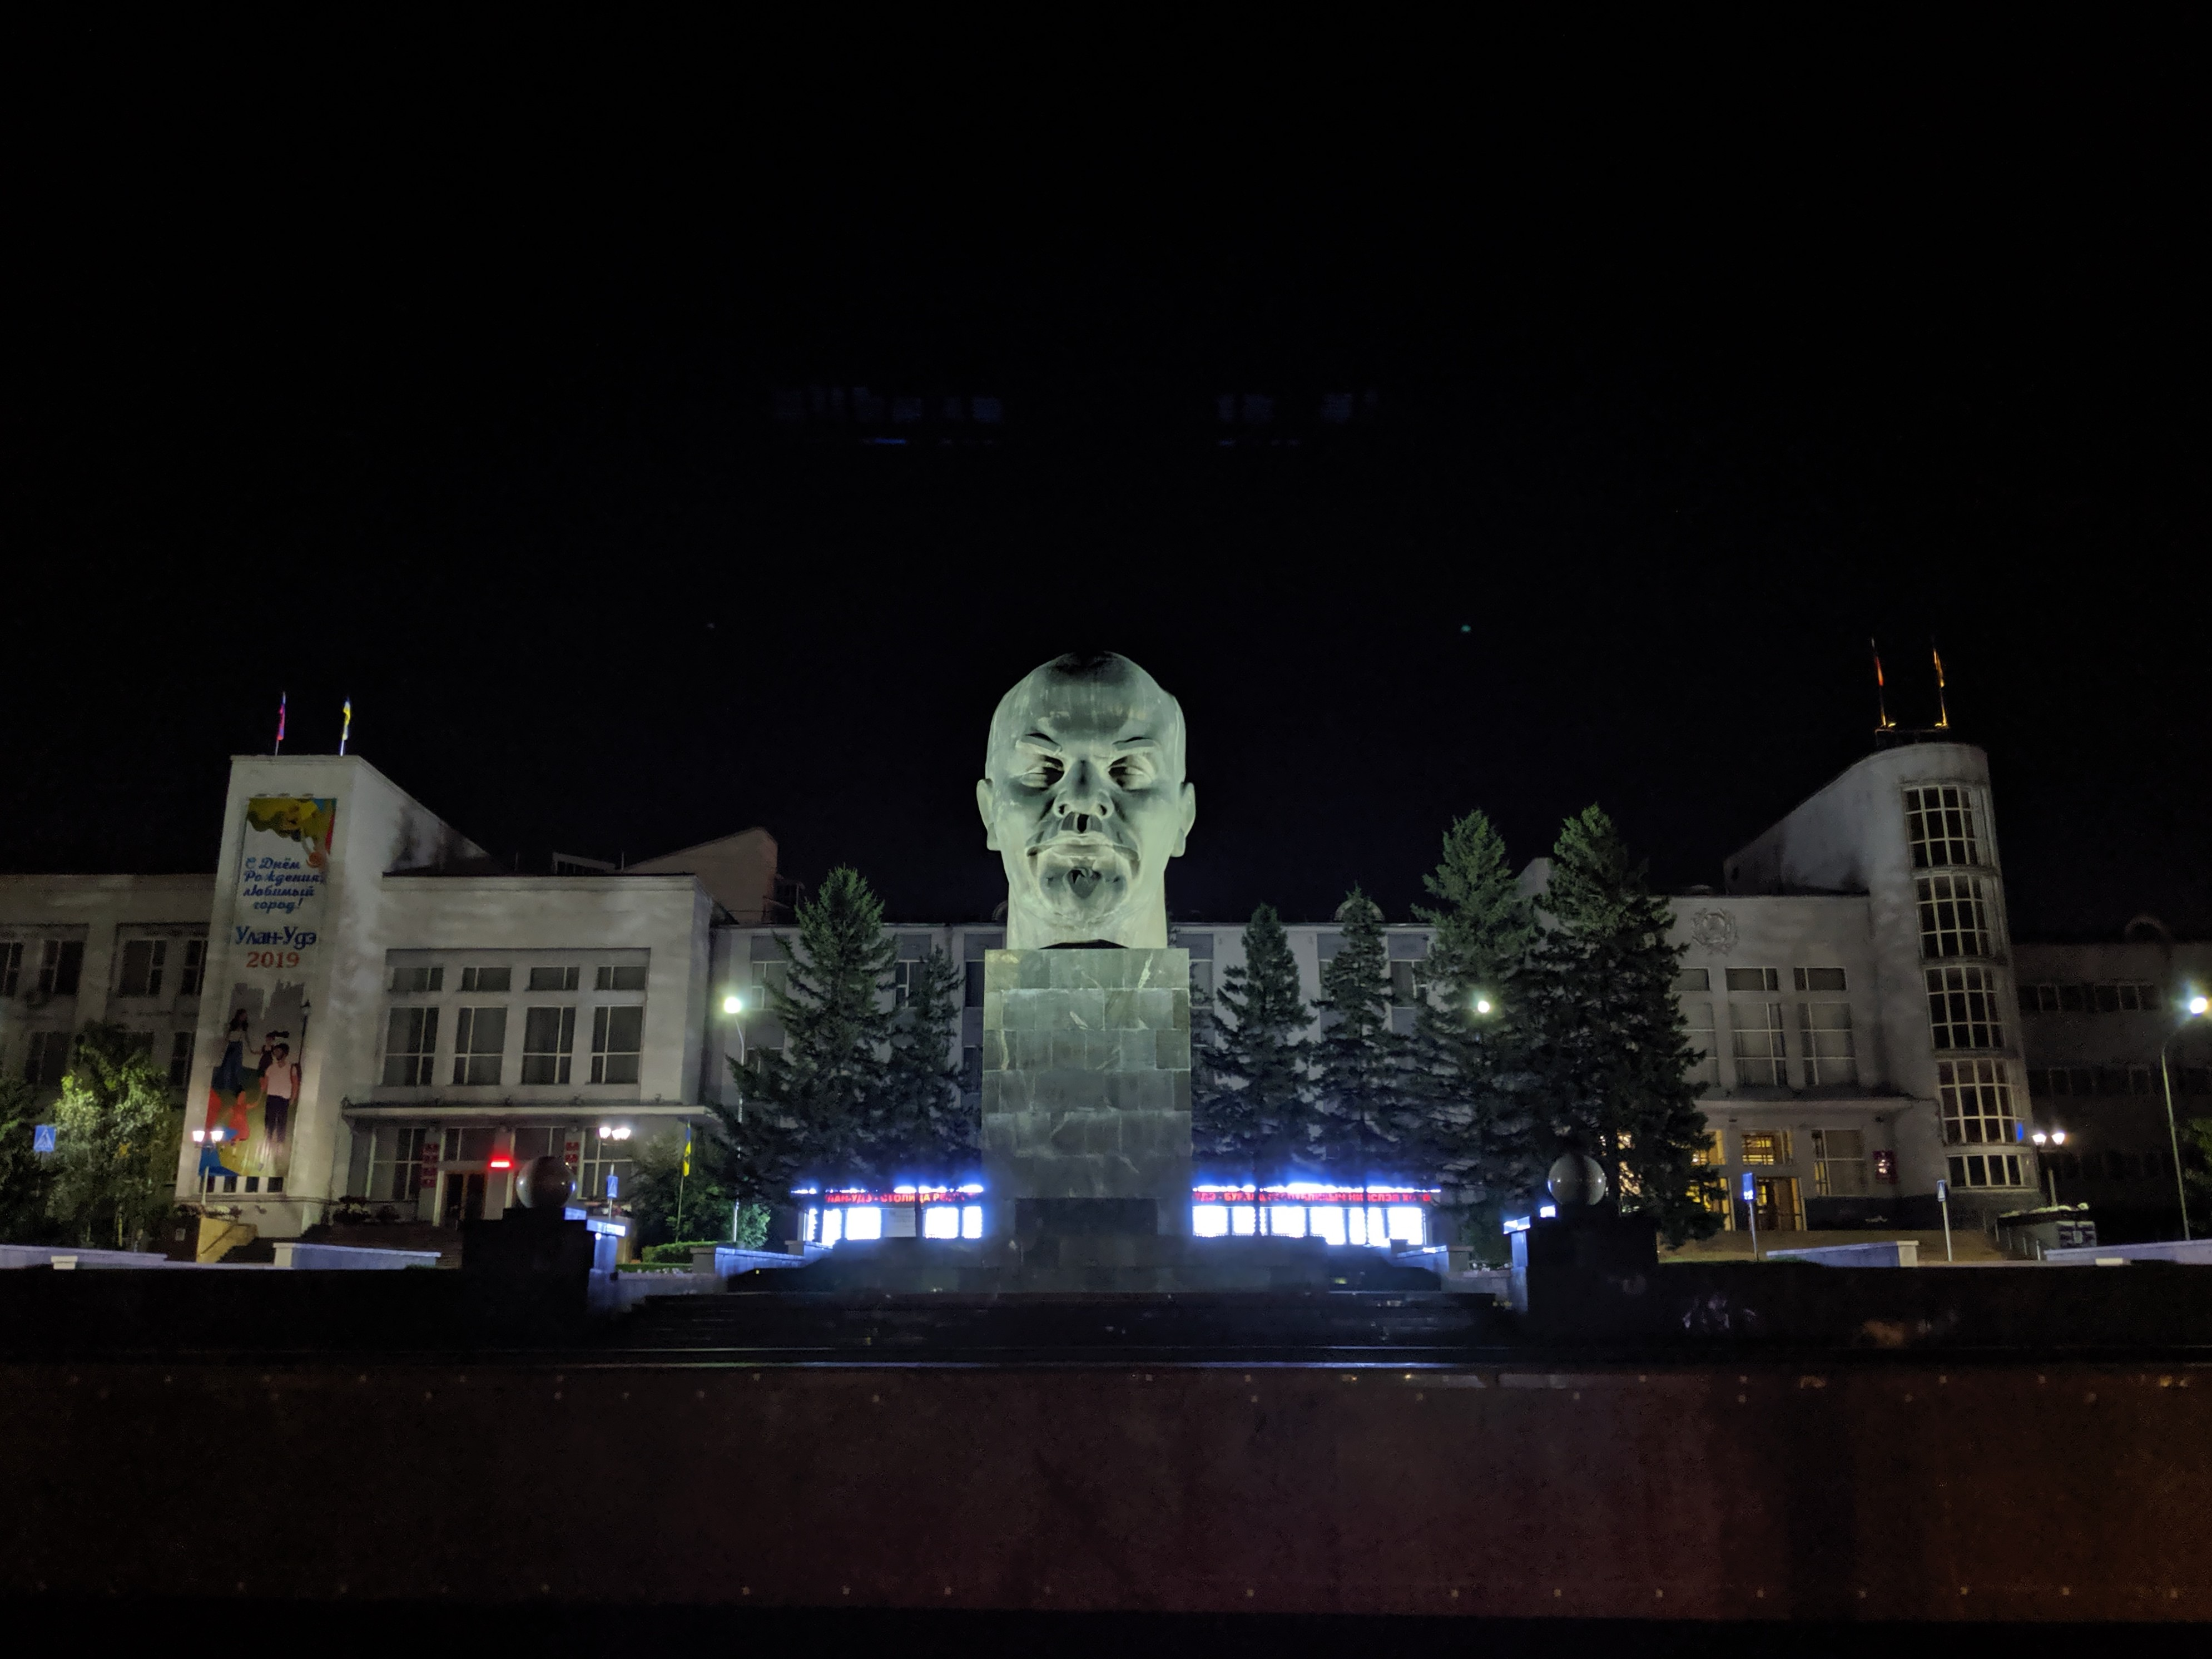 Lenin head statue at night in Ulan-Ude